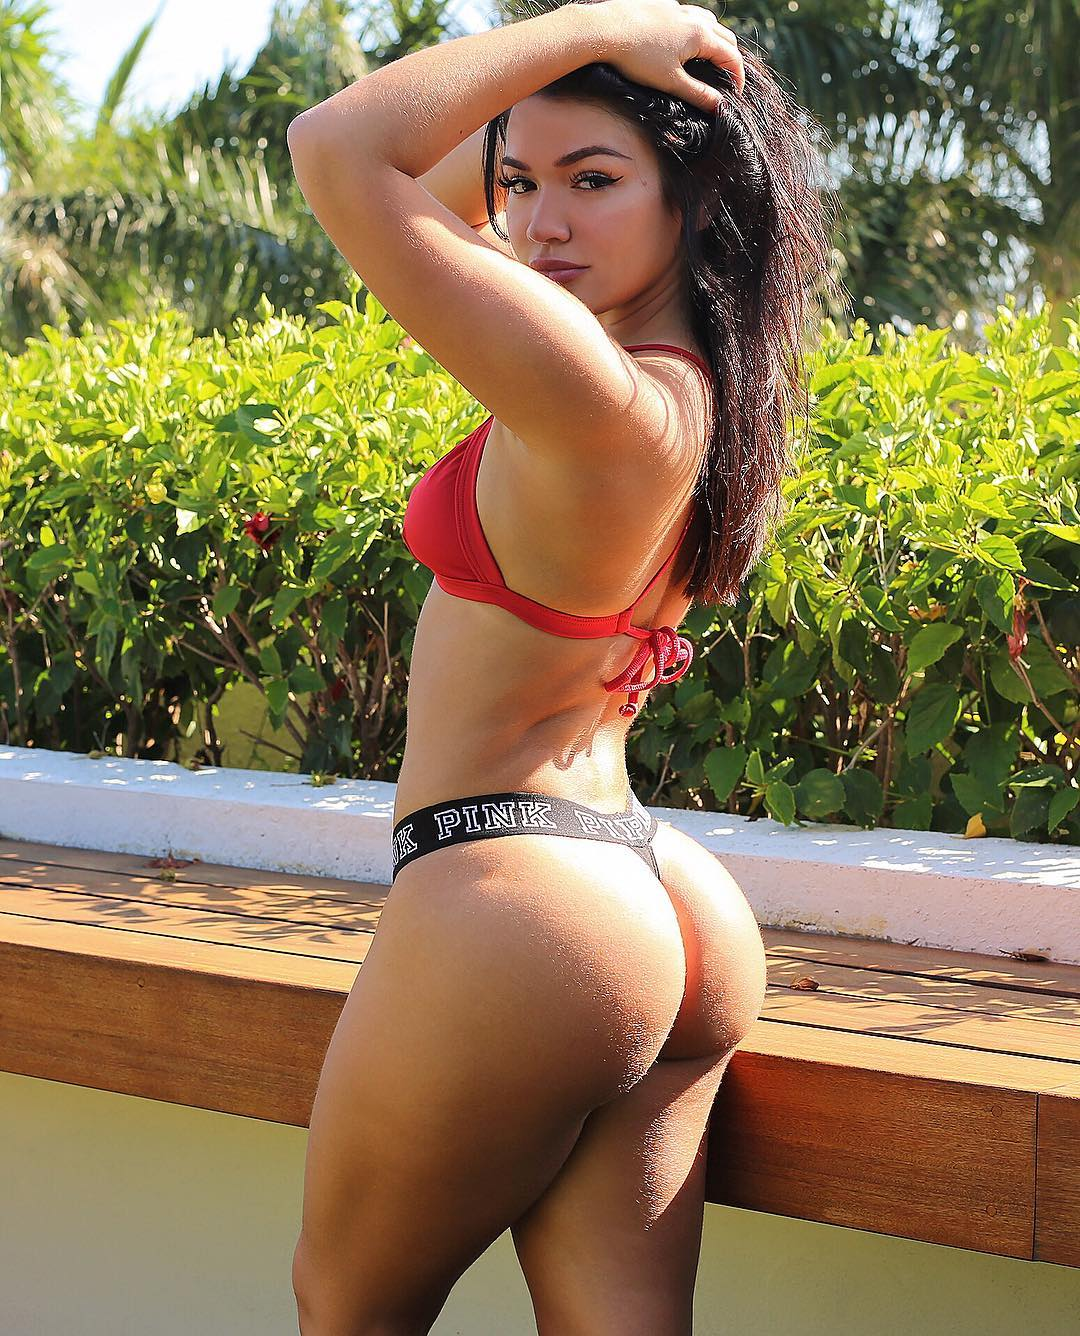 Tits Genesis Mia Lopez nude (49 foto and video), Ass, Hot, Twitter, swimsuit 2020